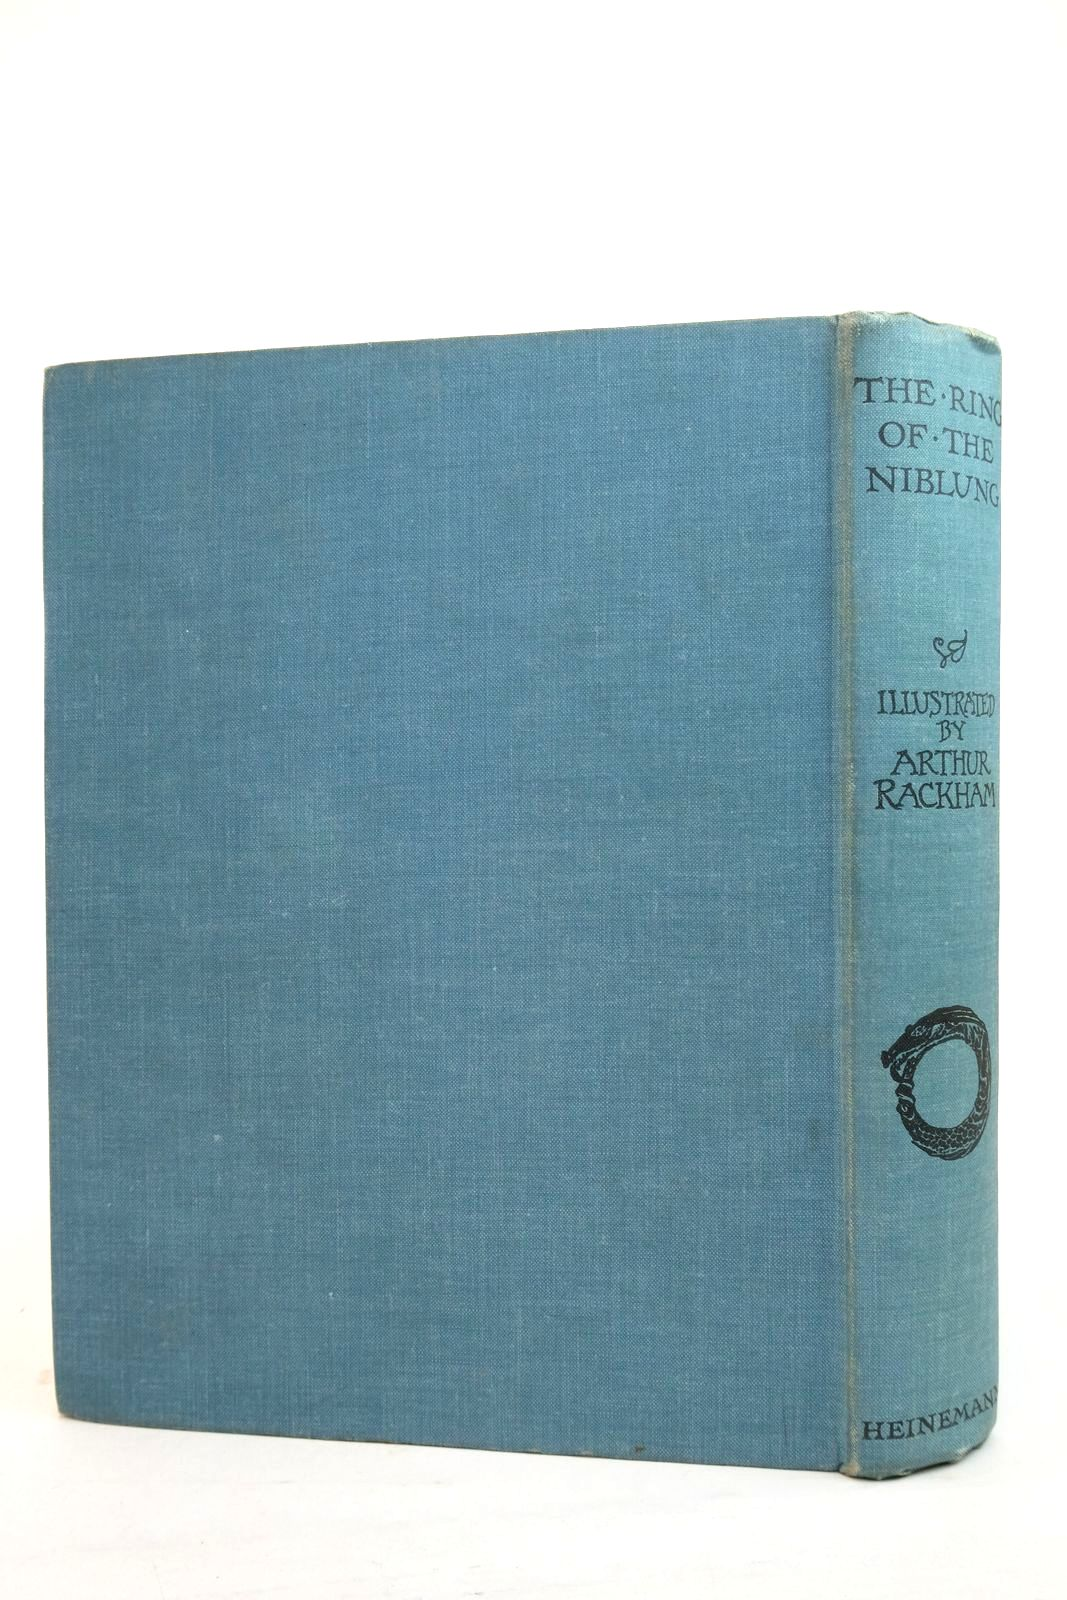 Photo of THE RING OF THE NIBLUNG written by Wagner, Richard illustrated by Rackham, Arthur published by William Heinemann Ltd. (STOCK CODE: 2134711)  for sale by Stella & Rose's Books